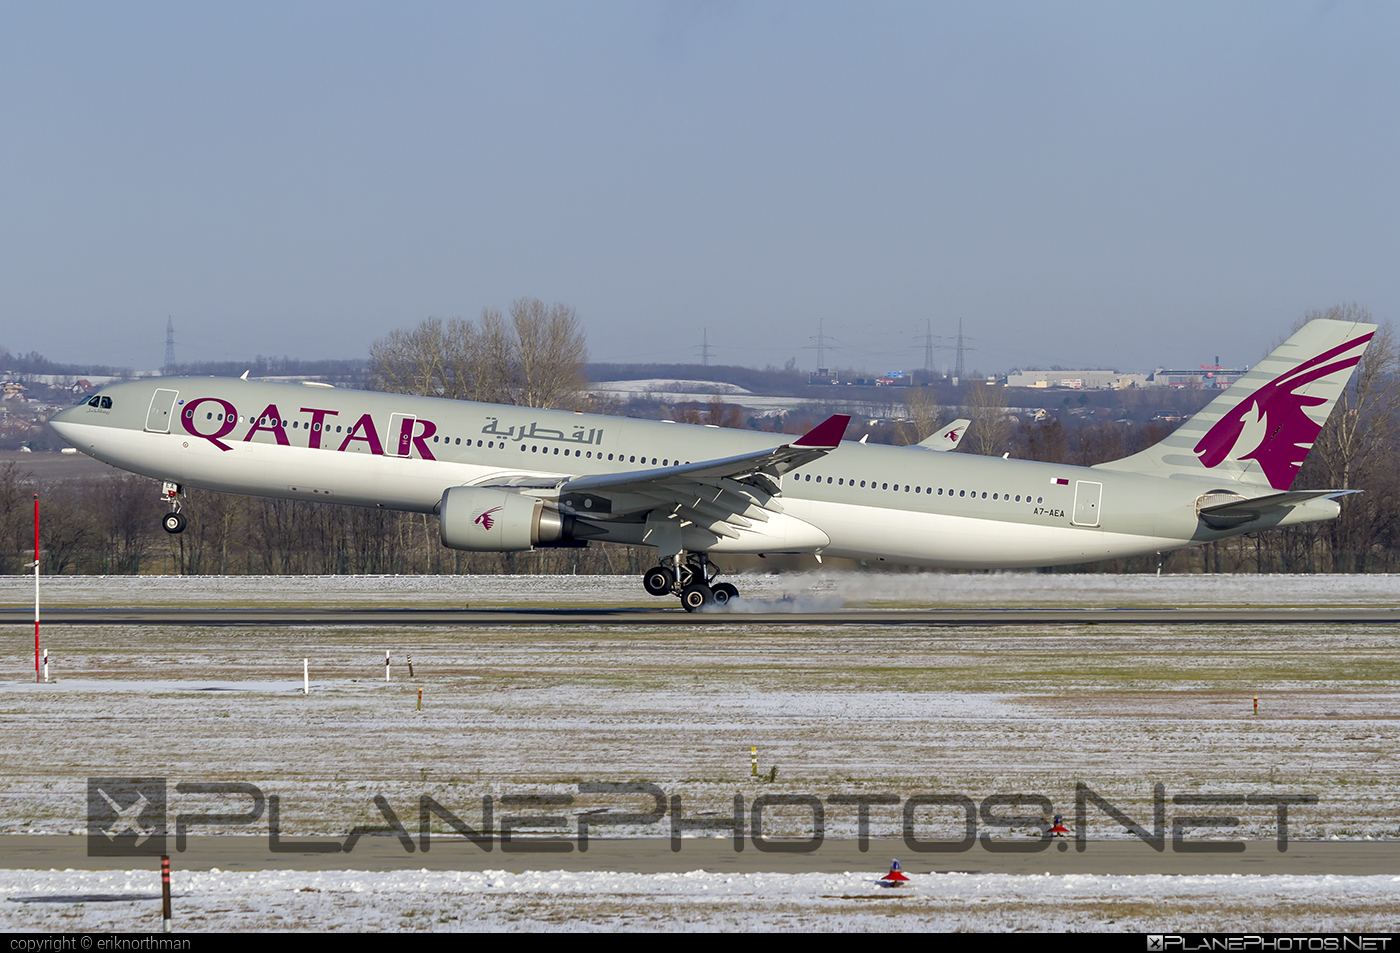 Airbus A330-303 - A7-AEA operated by Qatar Airways #a330 #a330family #airbus #airbus330 #qatarairways